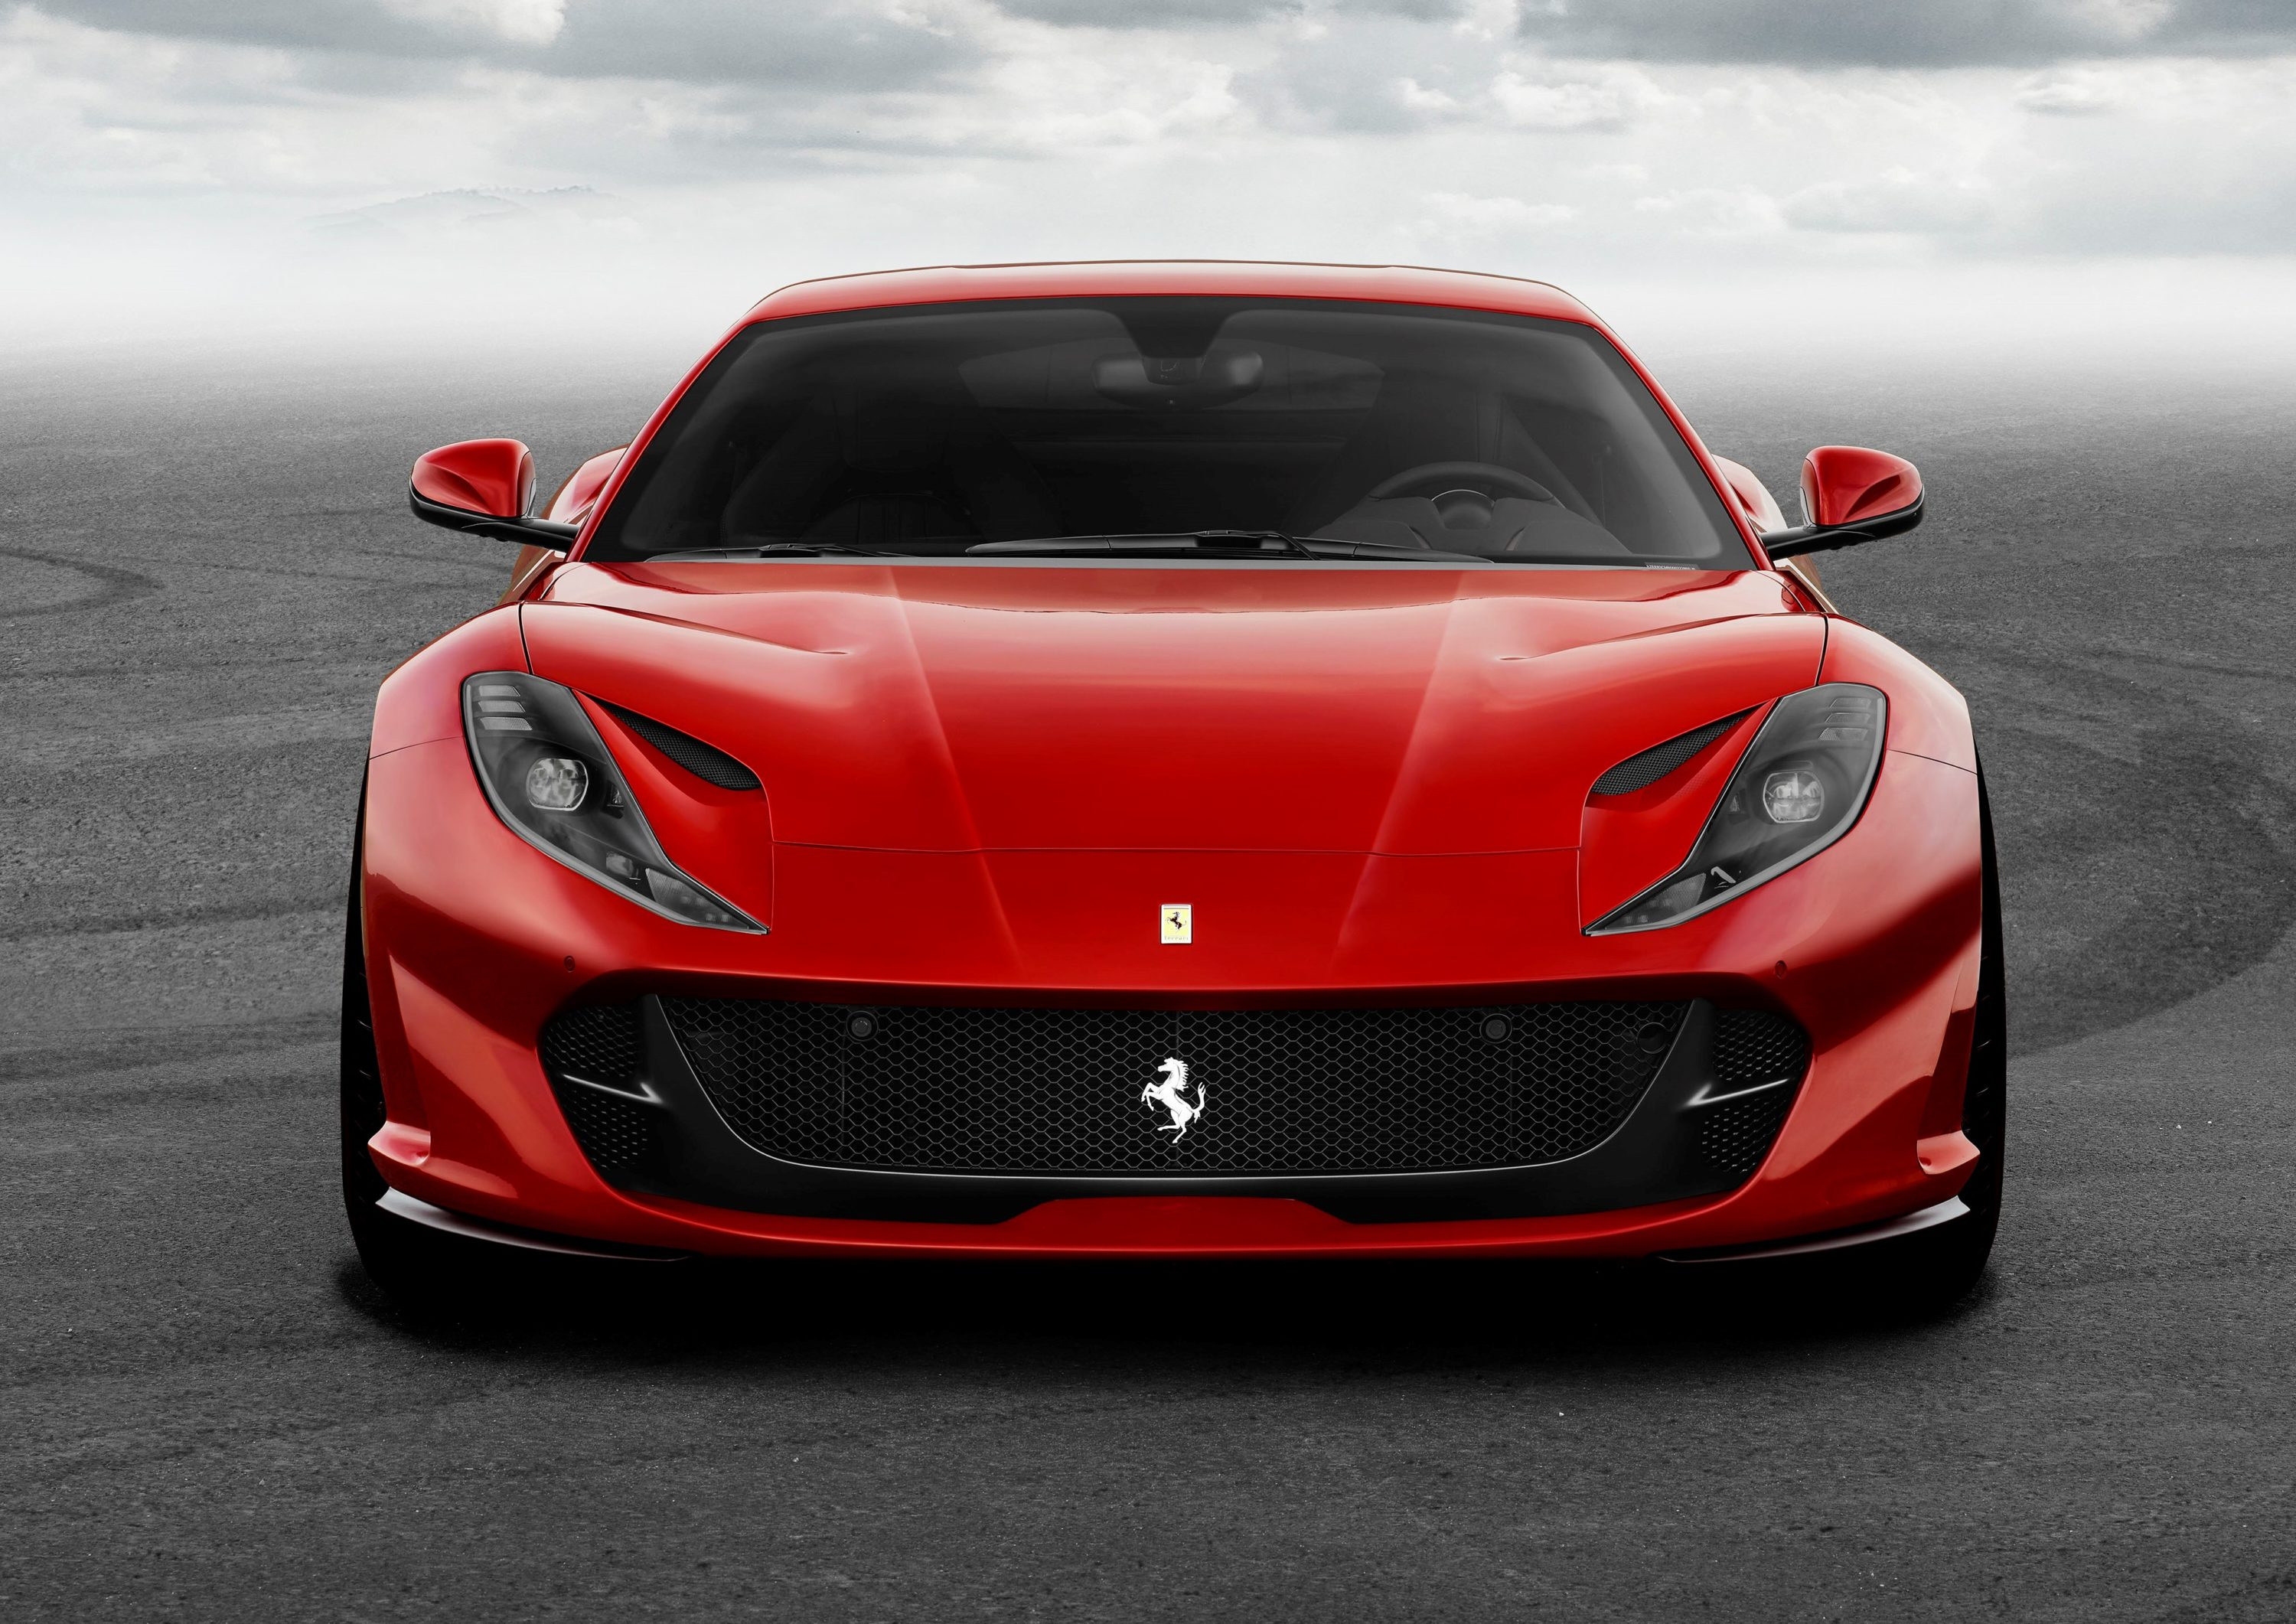 trumps cars in last at sport most news used sold expensive driving scaglietti year auto ferrari auction the